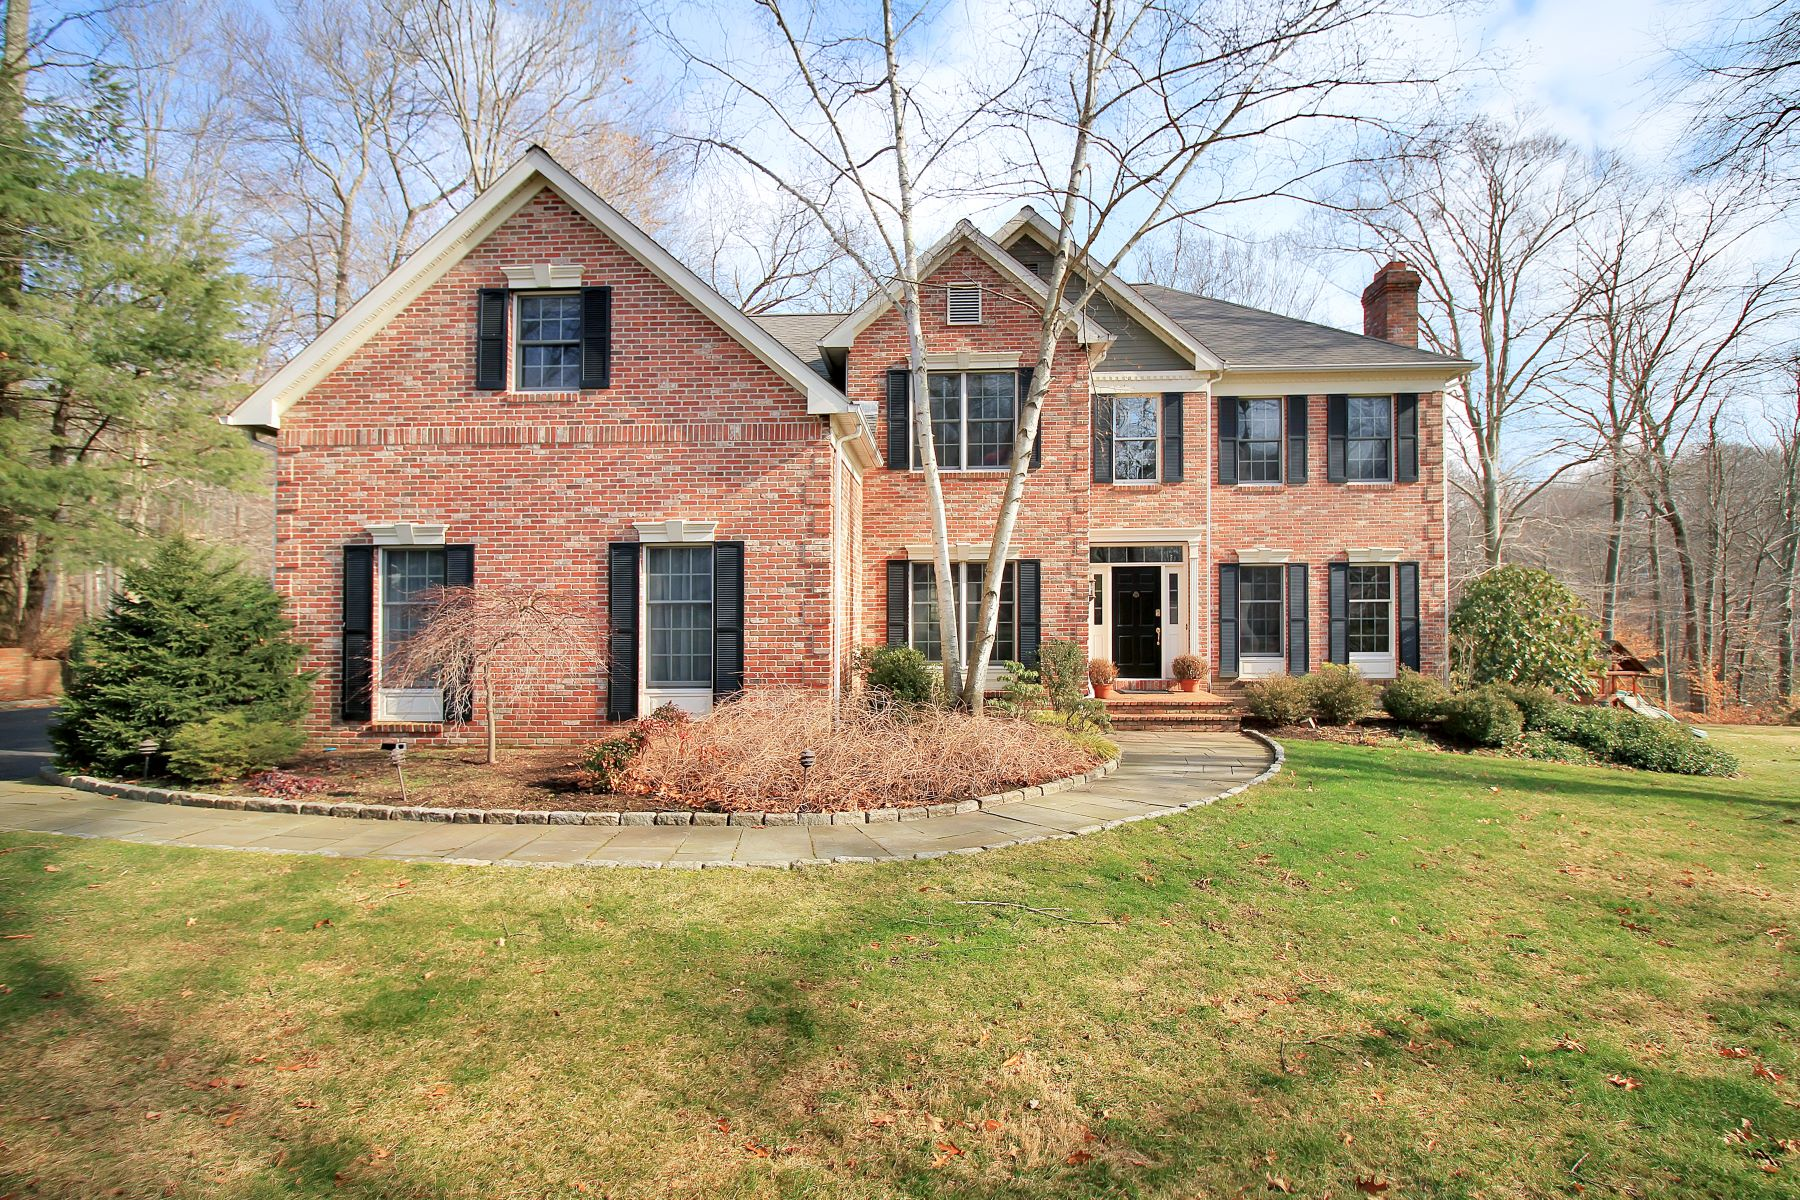 Single Family Home for Sale at Southport Chase Colonial 864 Flintlock Road Southport, Fairfield, Connecticut, 06890 United States